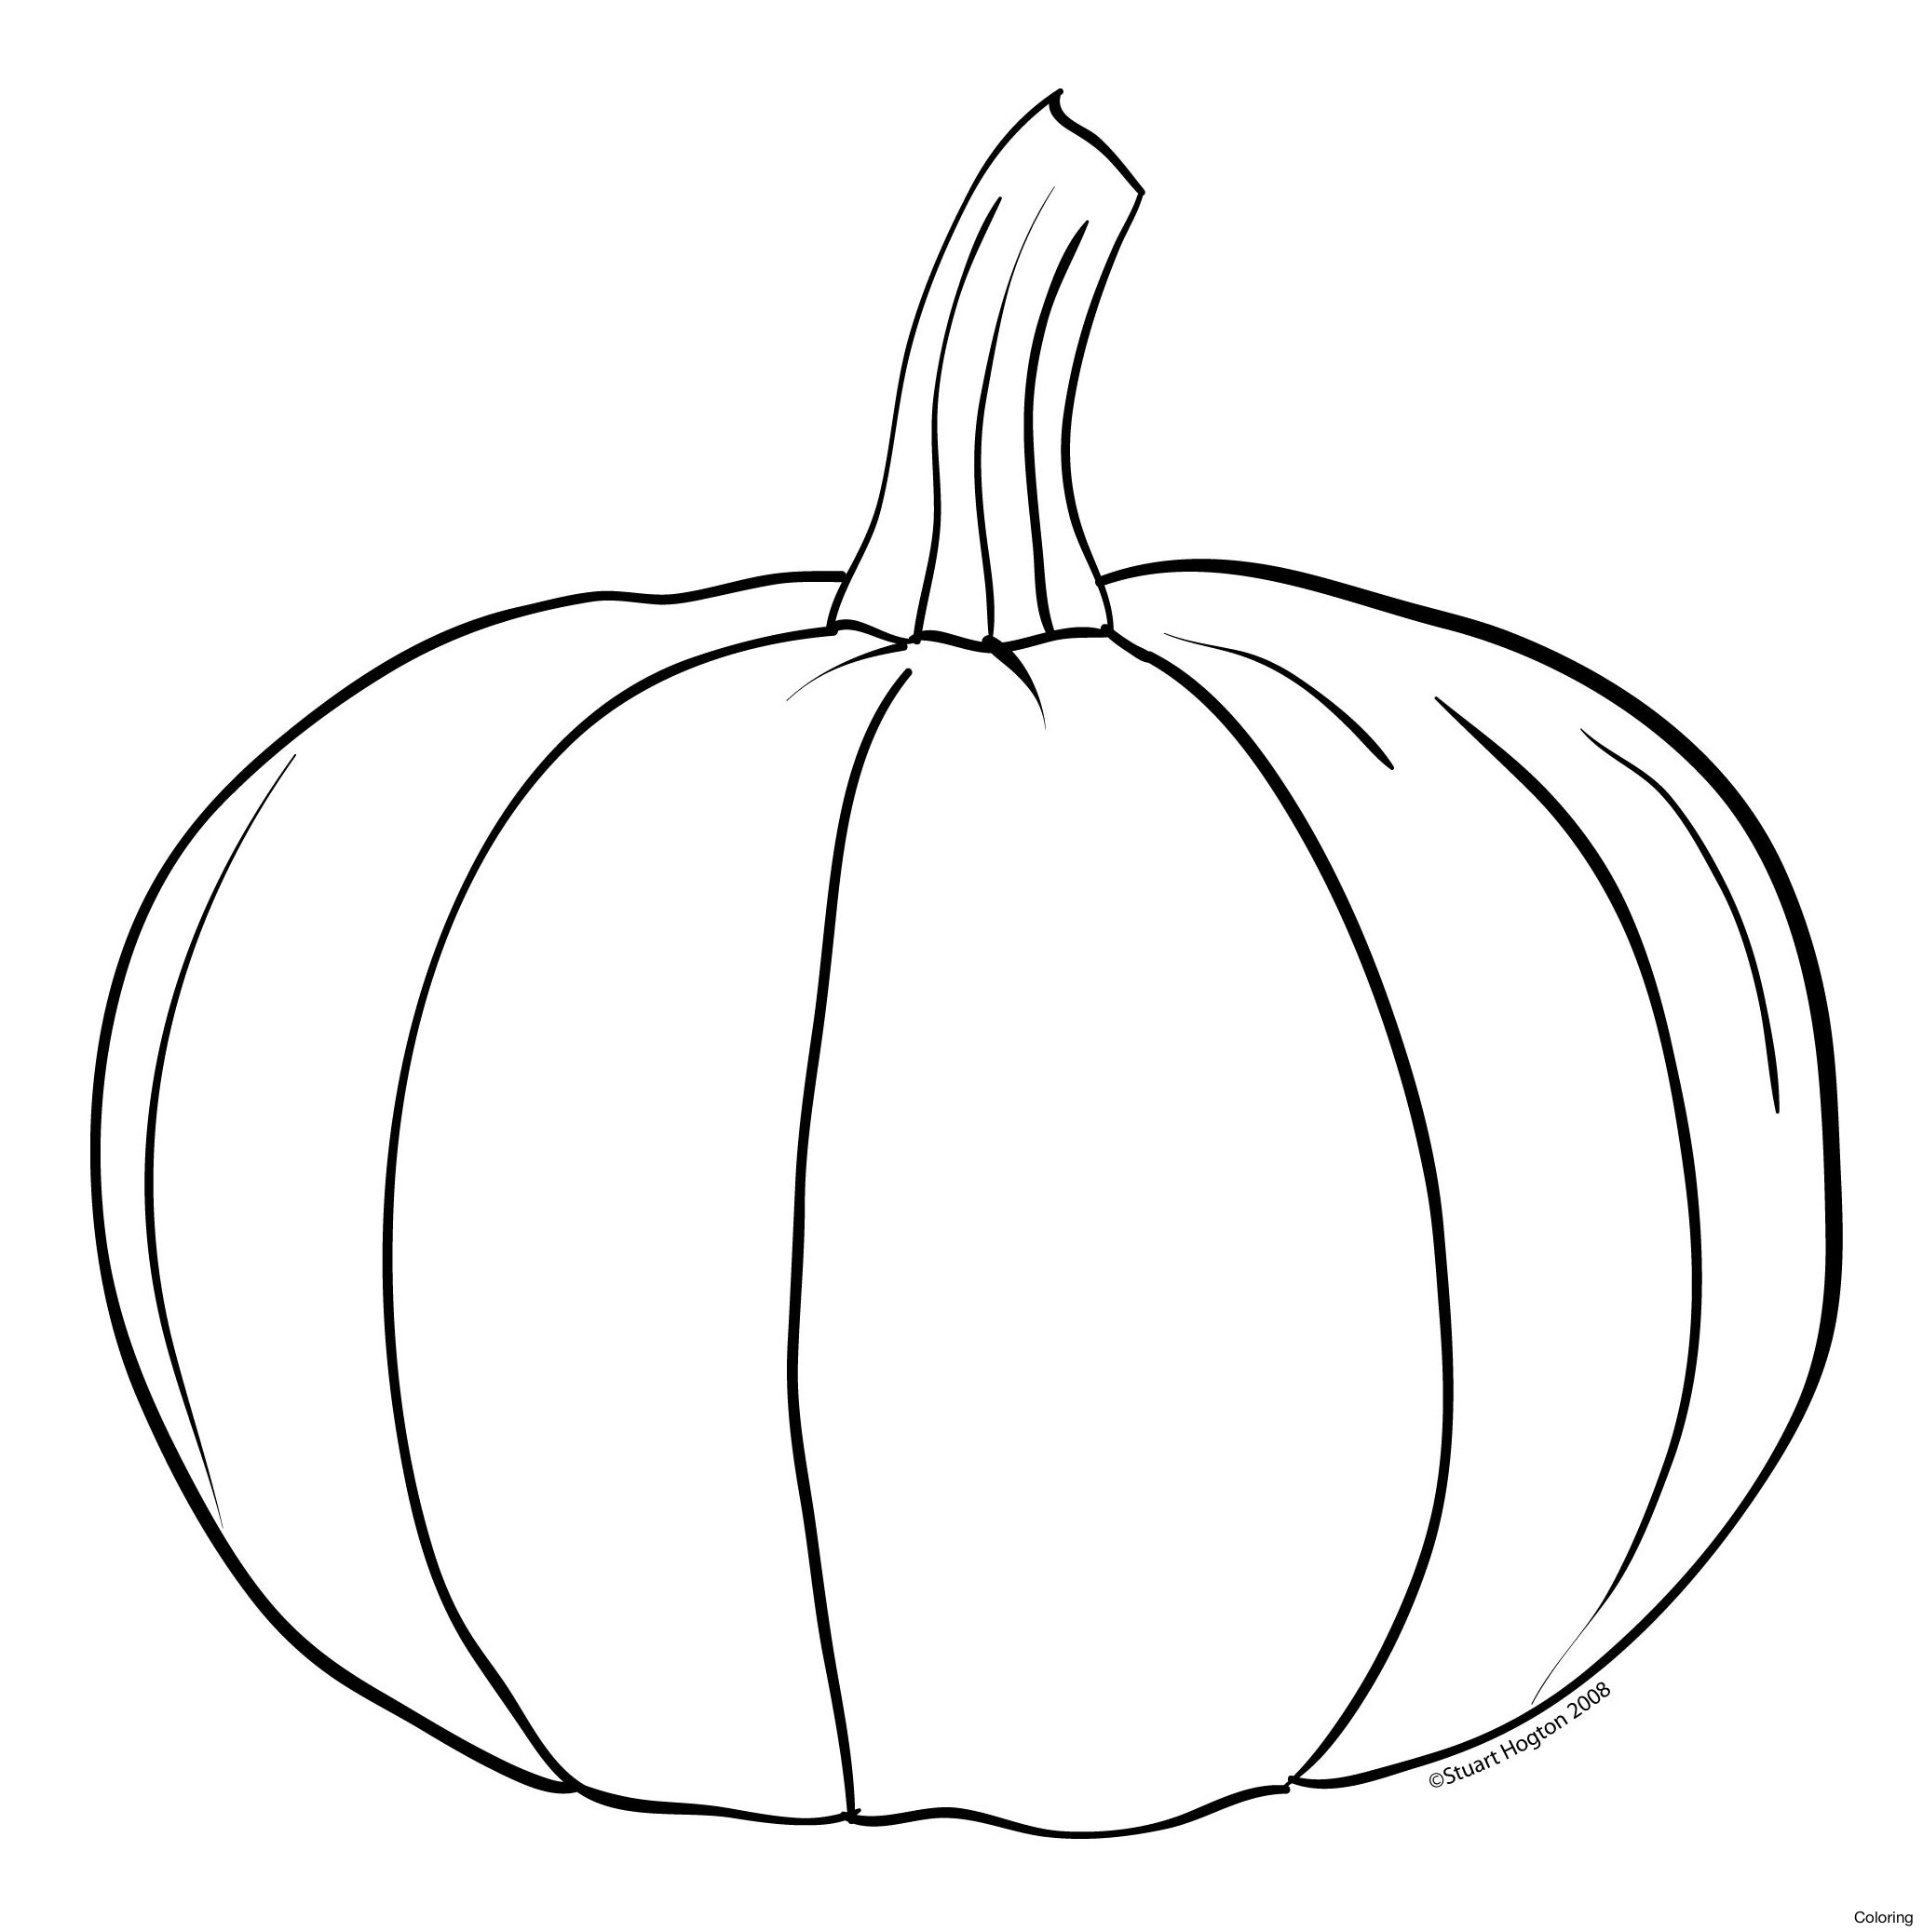 2065x2075 6iropkkat free pumpkin templates printable coloring line drawing - Coloring Pumpkin Templates 2